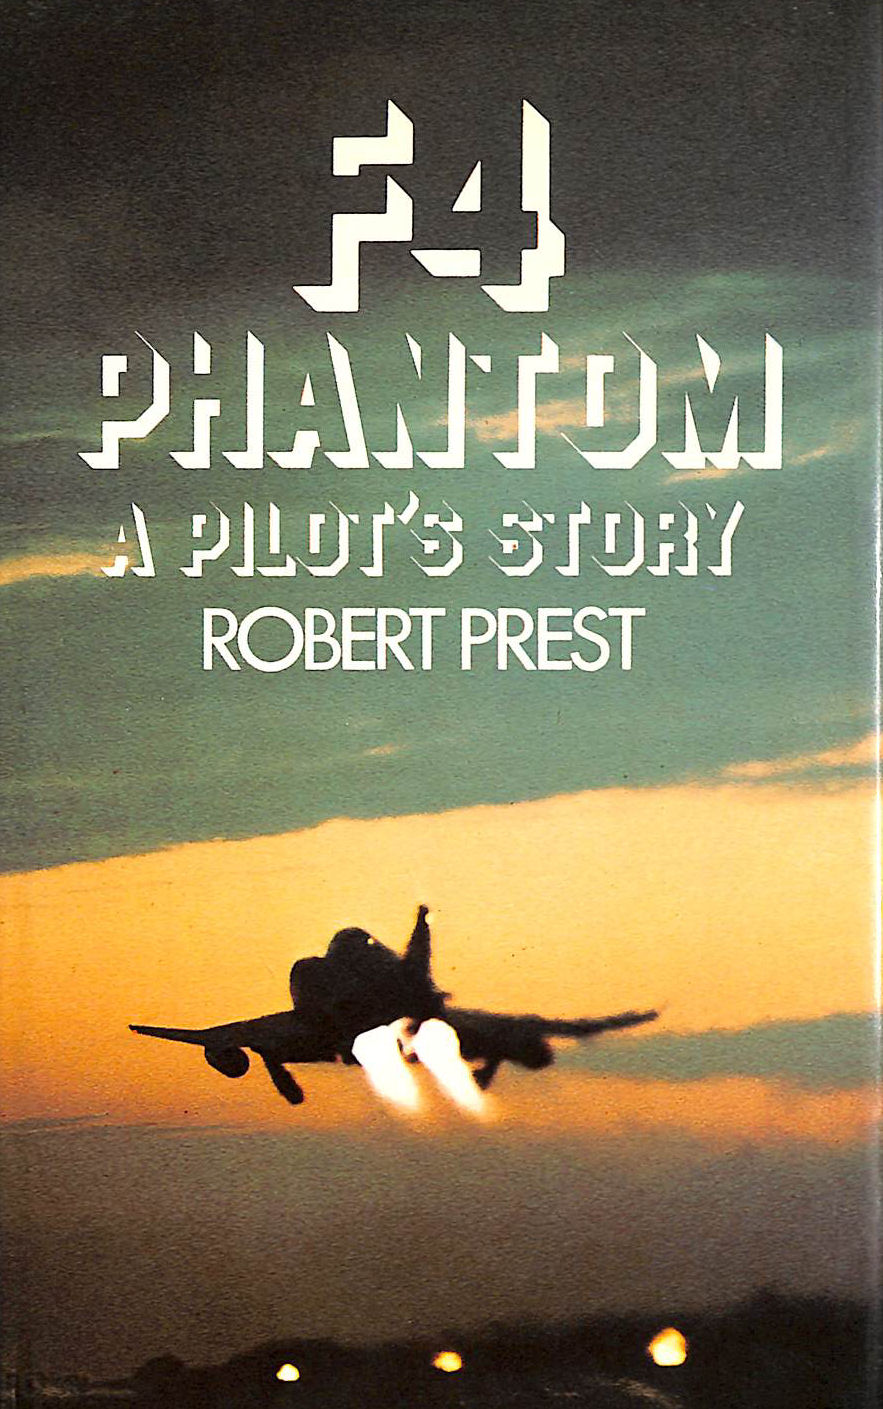 Image for F4 Phantom: A Pilot's Story